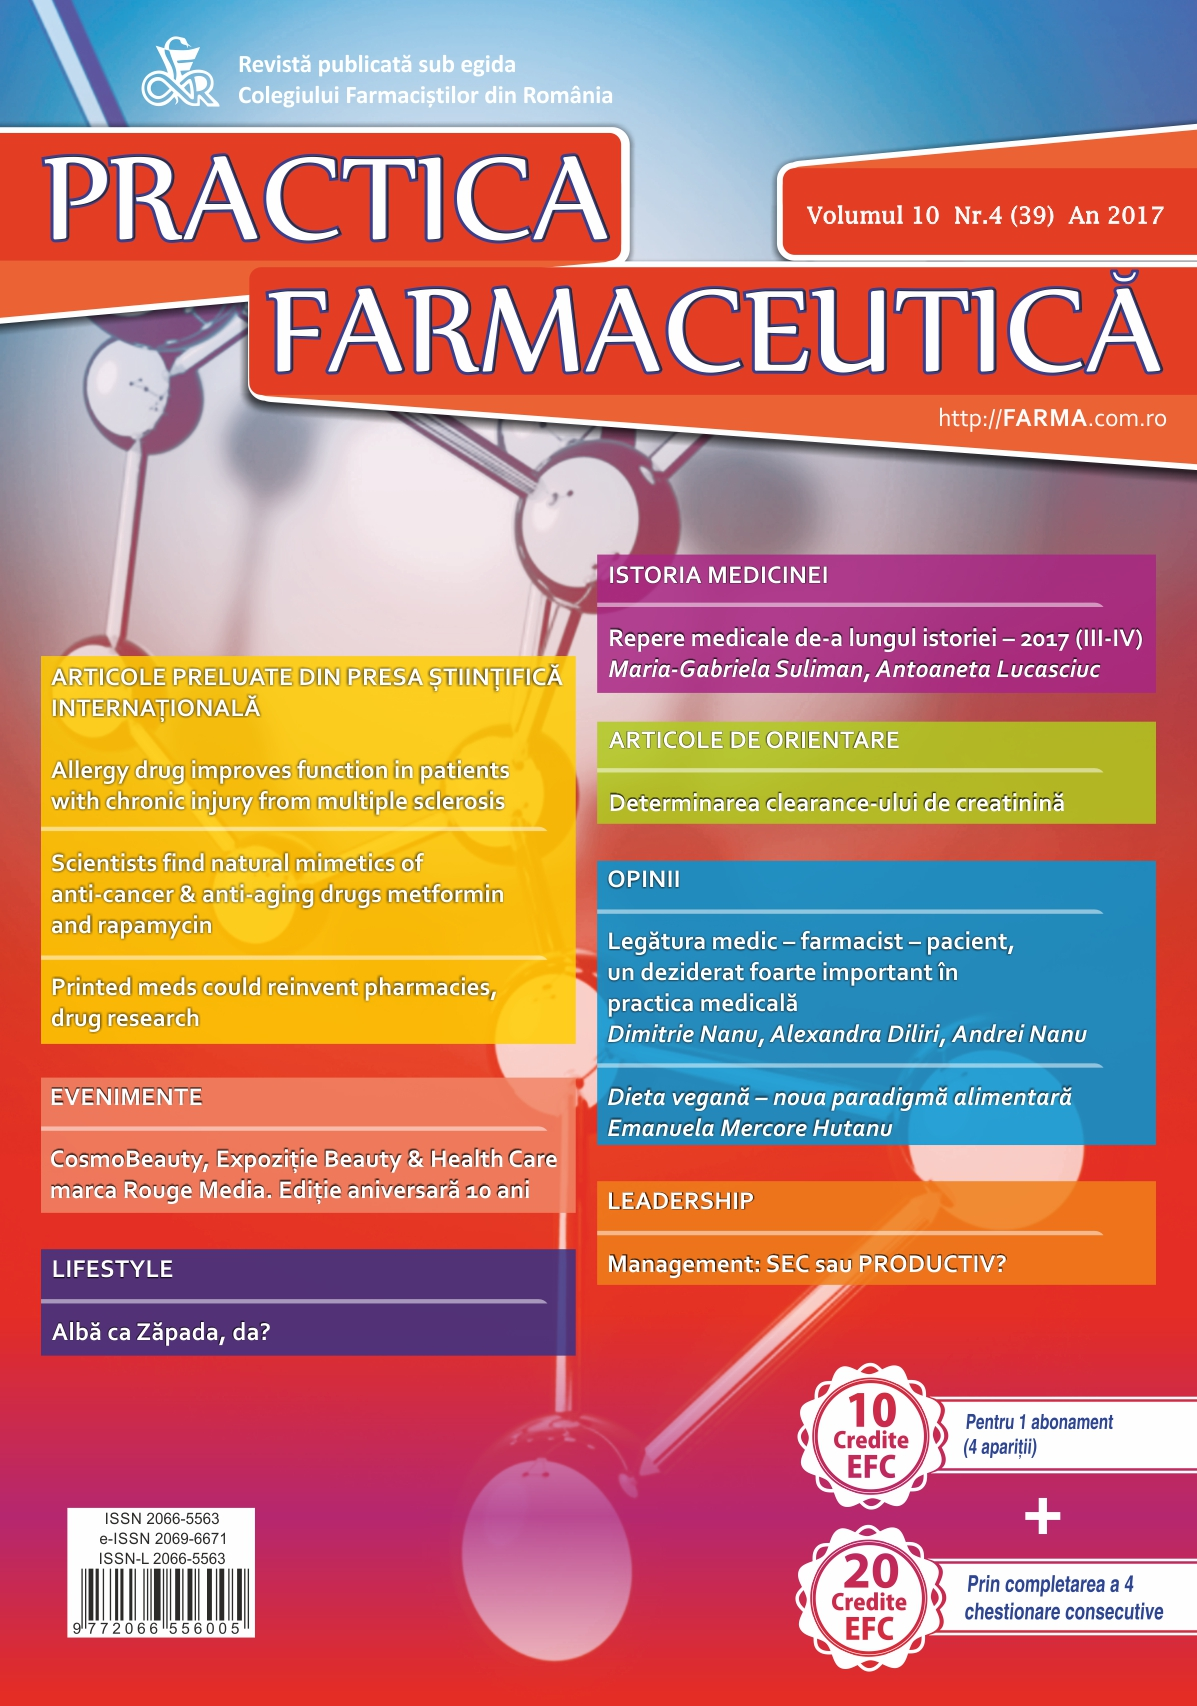 Revista Practica Farmaceutica, Vol. X, No. 4 (39), 2017